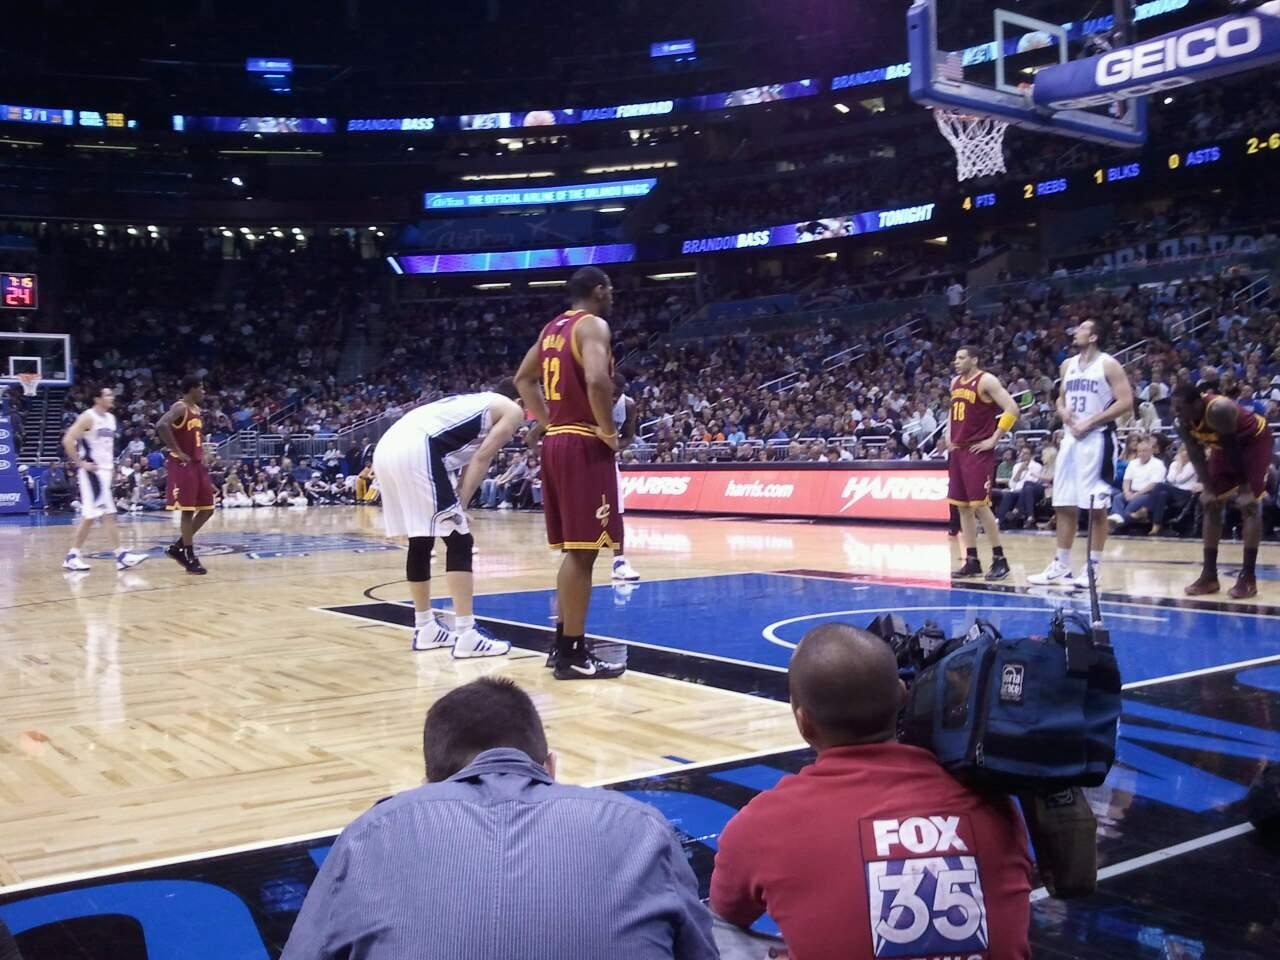 Amway Center Section Floor S Row 1 Seat 28